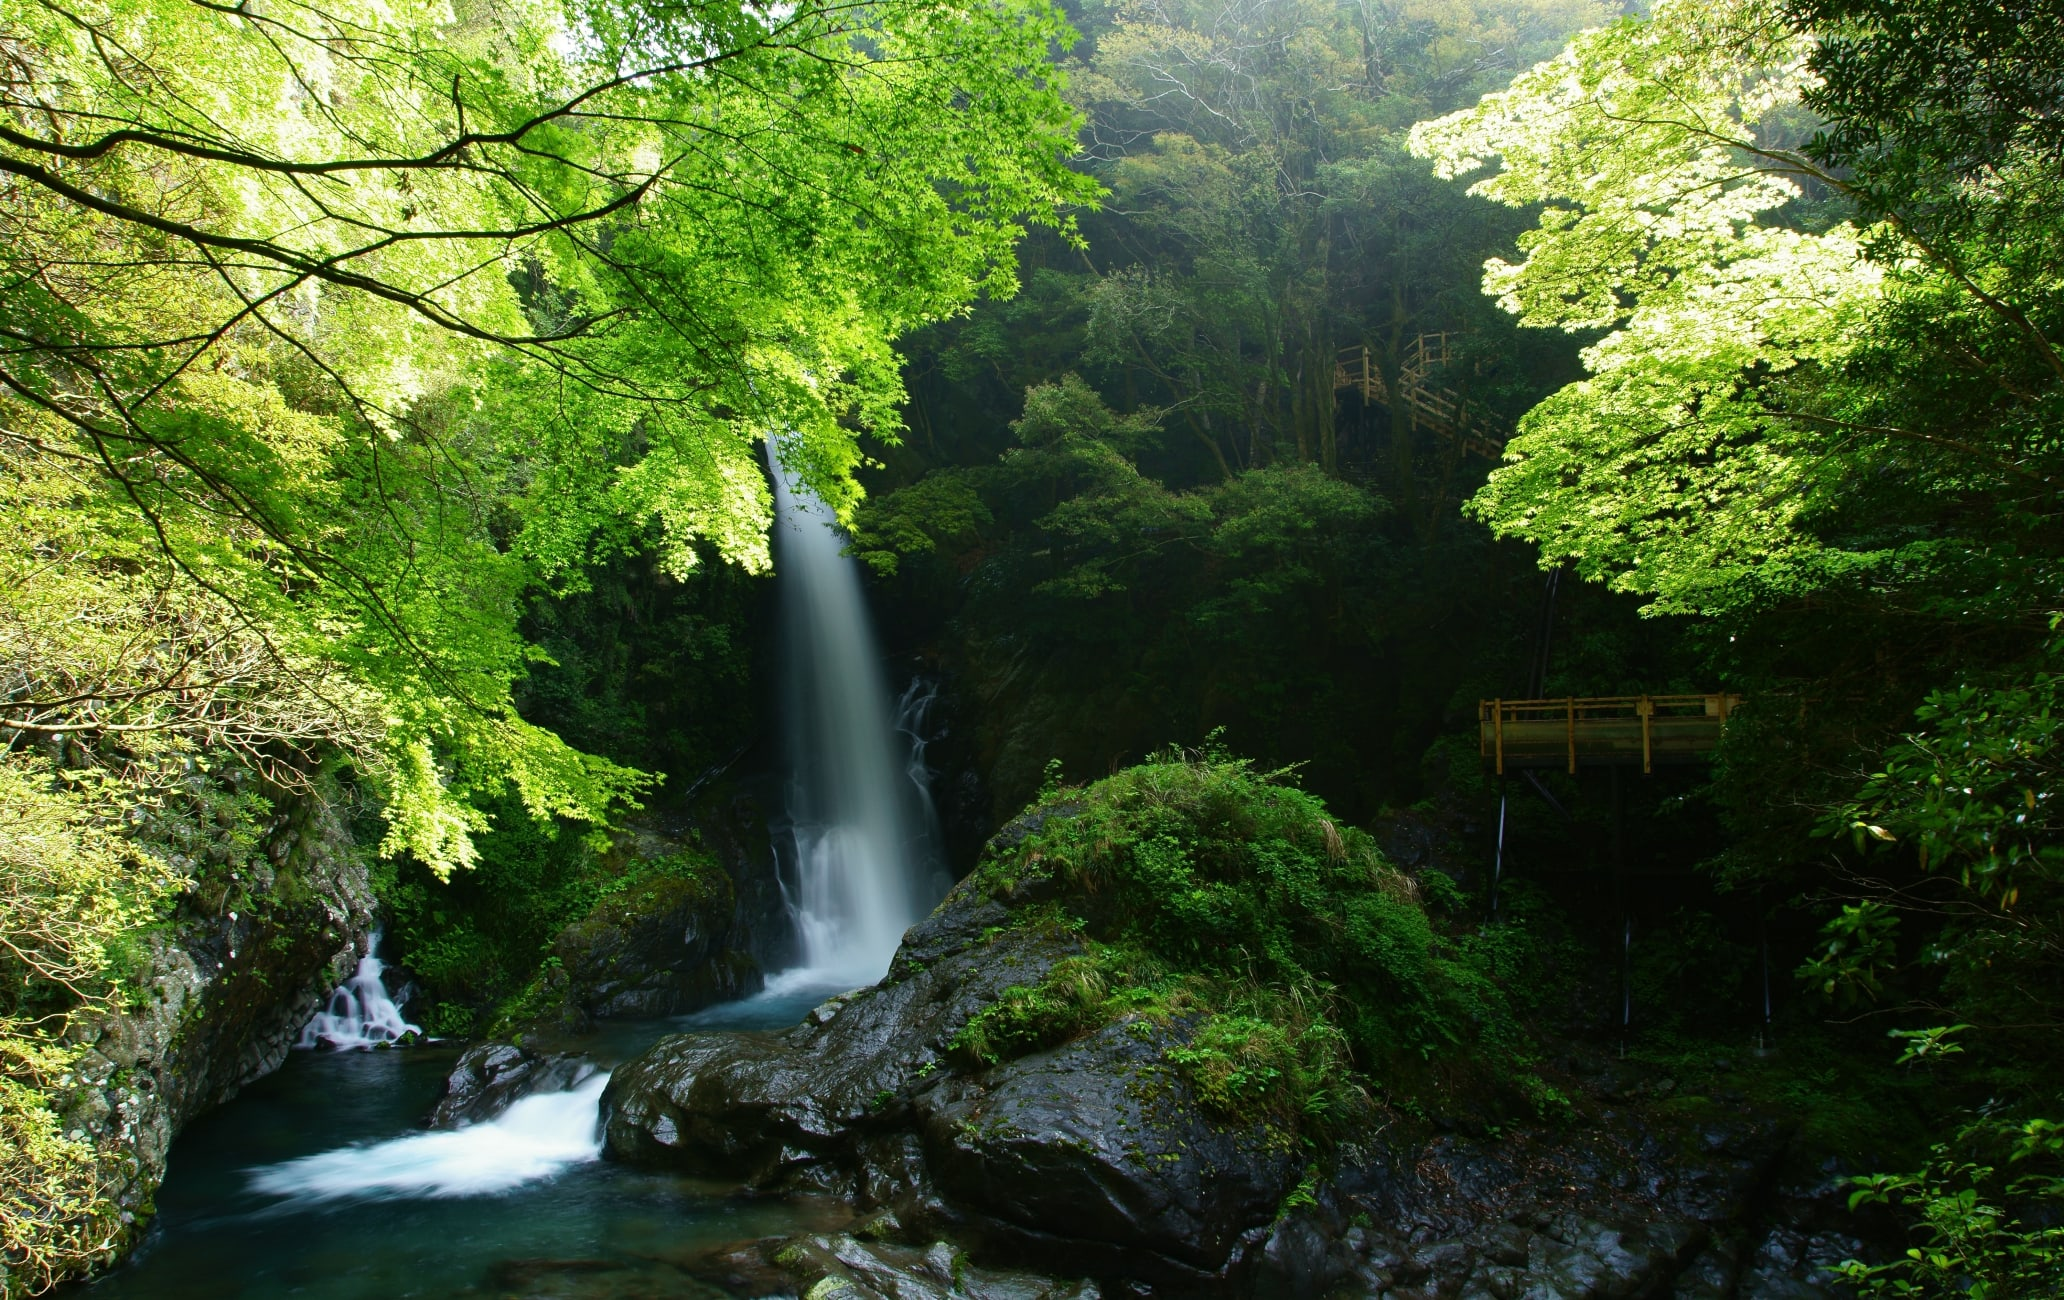 Kawazu Seven Waterfalls